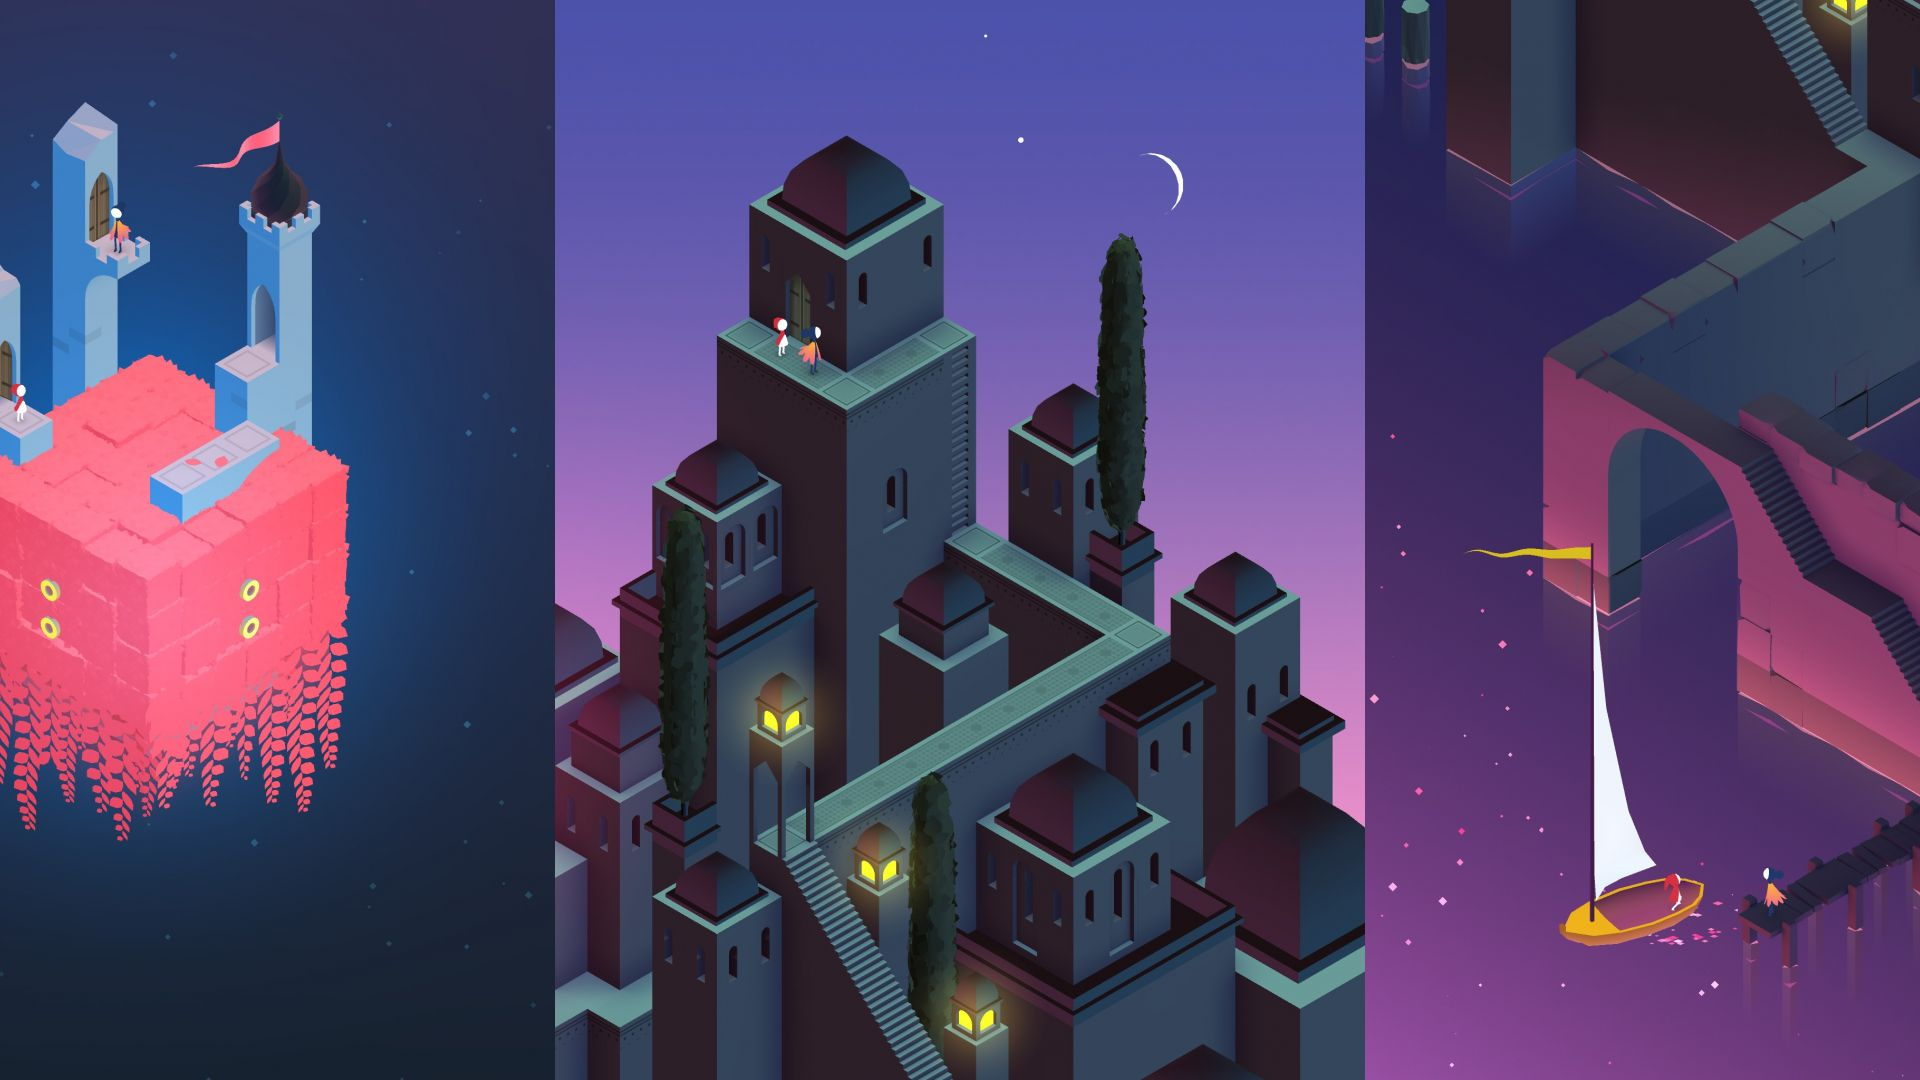 Wallpaper Monument Valley 2, video game, game, 4k